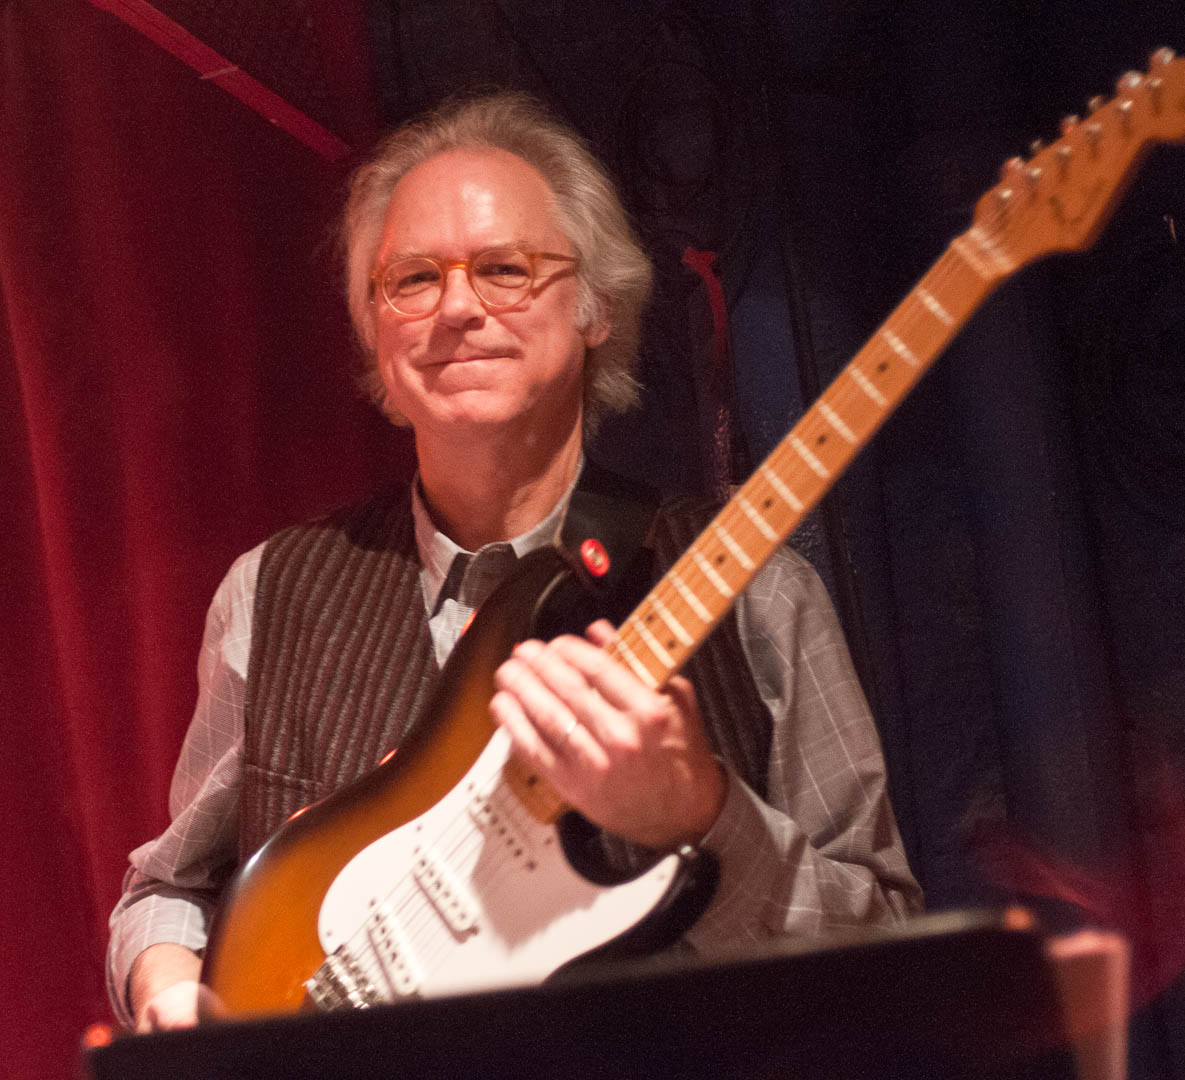 Bill Frisell with the Kermit Driscoll Quartet at the Cornelia Street Cafe